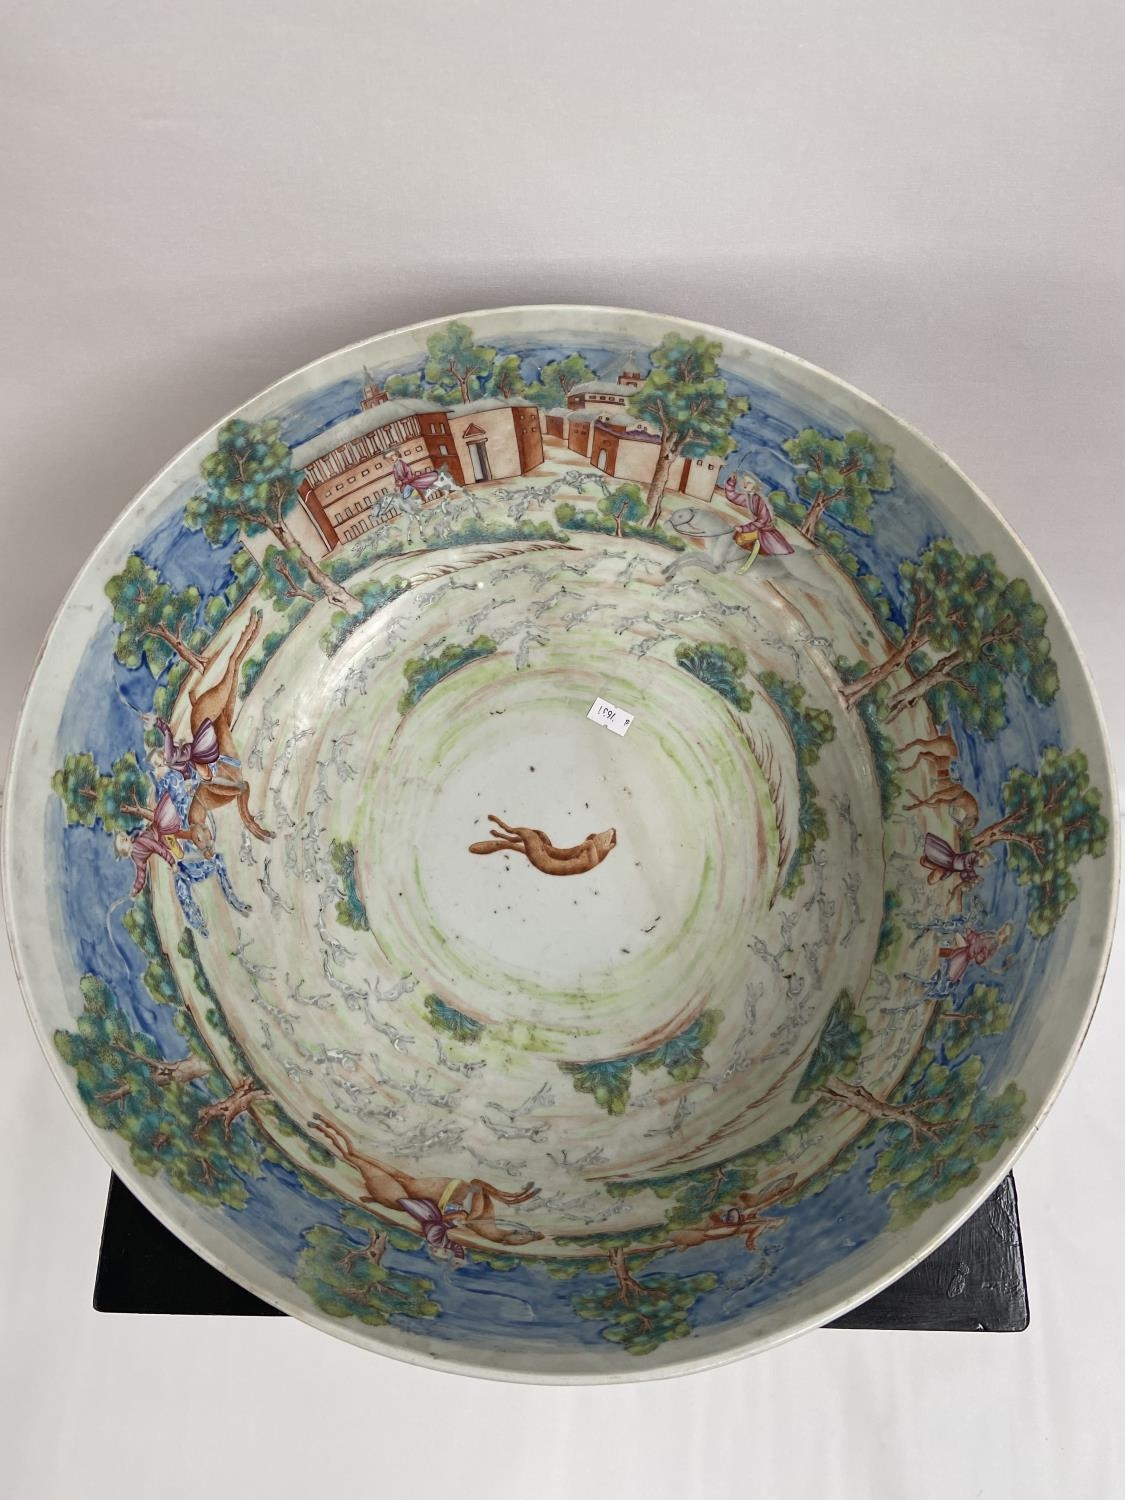 A LARGE 19TH CENTURY CHINESE HAND PAINTED BOWL. EXTERIOR DEPICTS CHINESE HUNTING SCENE PANELS. THE - Image 6 of 39